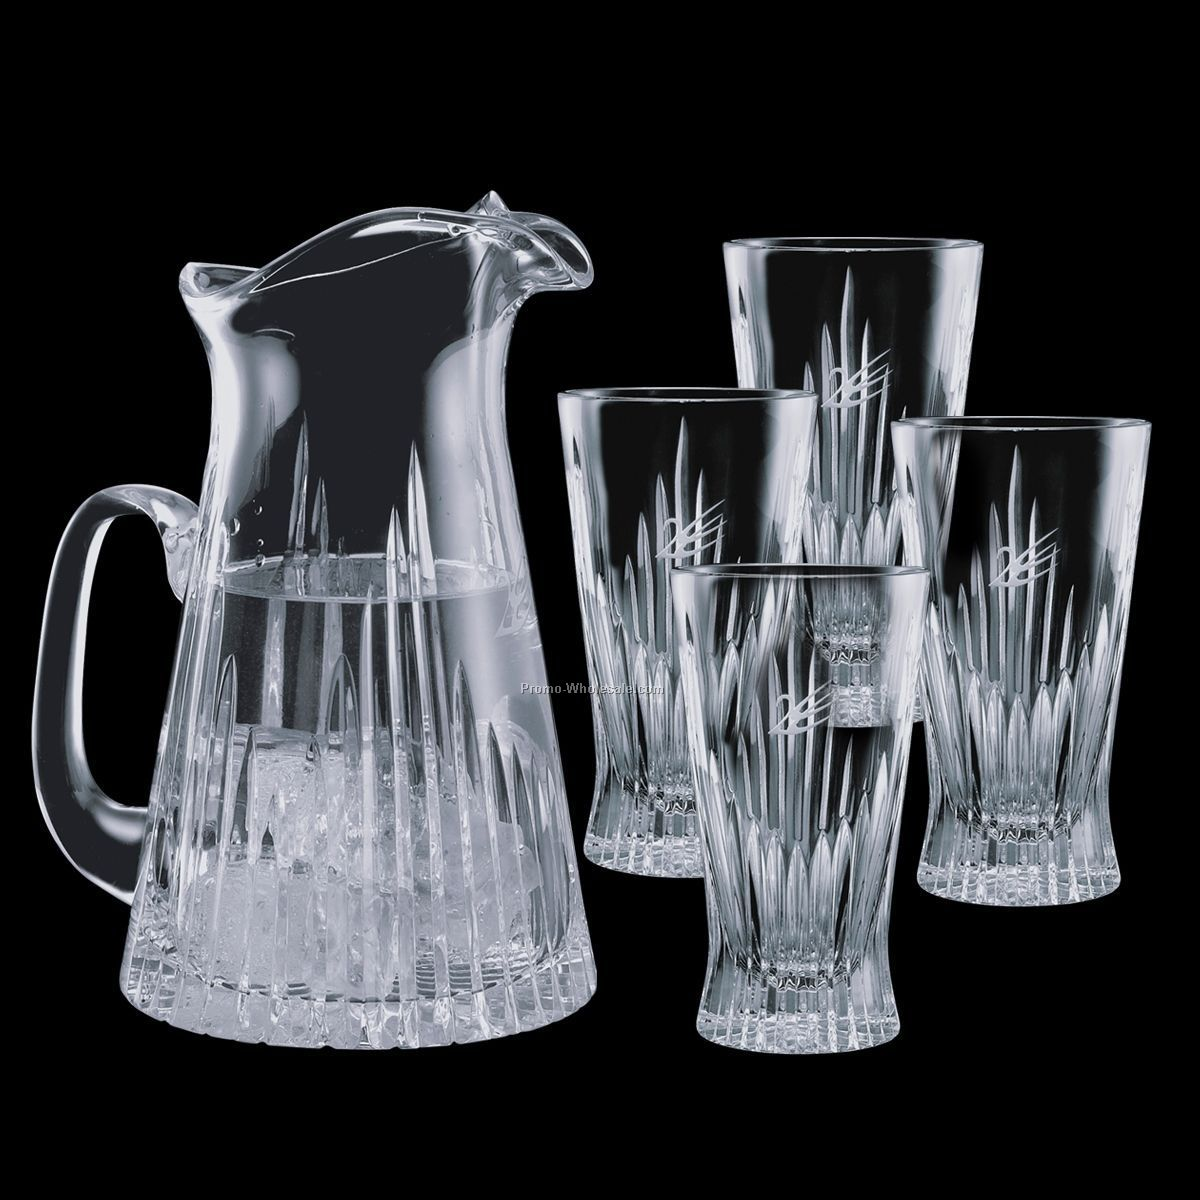 30 Oz. Cromwell Pitcher & 4 14 Oz. Coolers